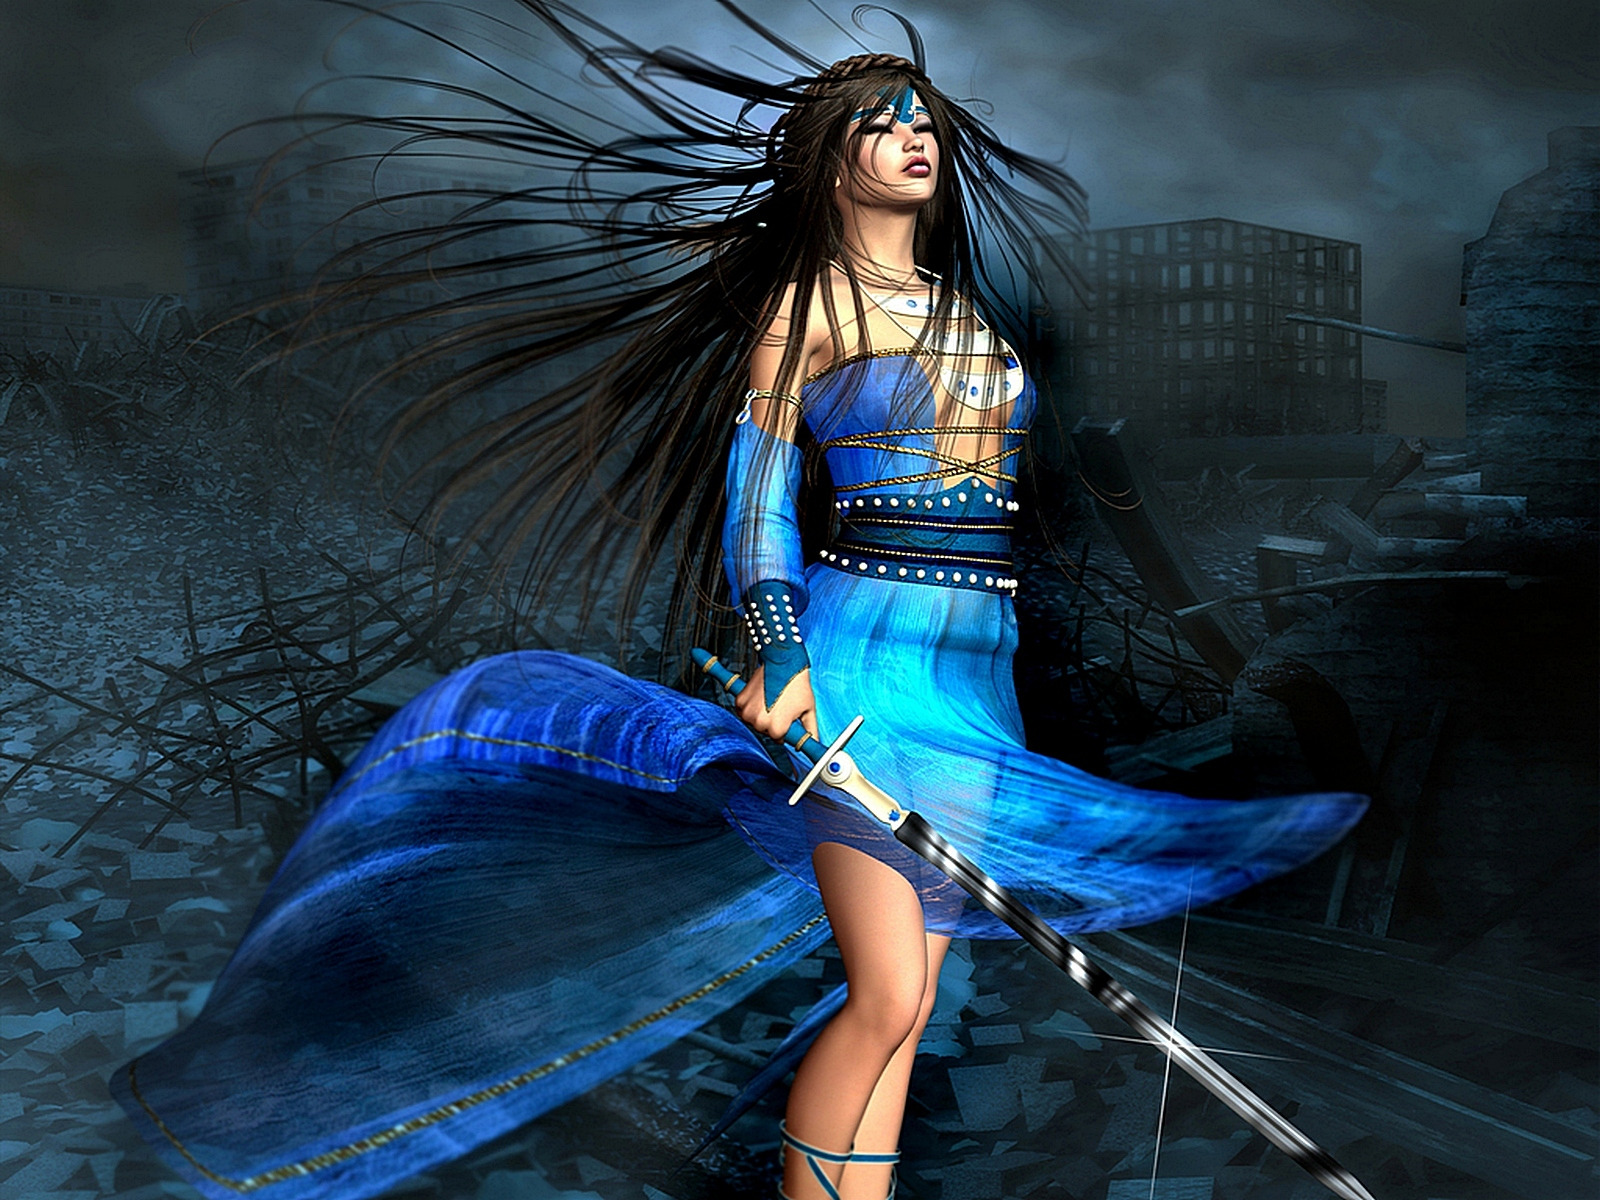 Hd 3d fantasy girls wallpapers wallpaper202 - 3d fantasy wallpaper ...